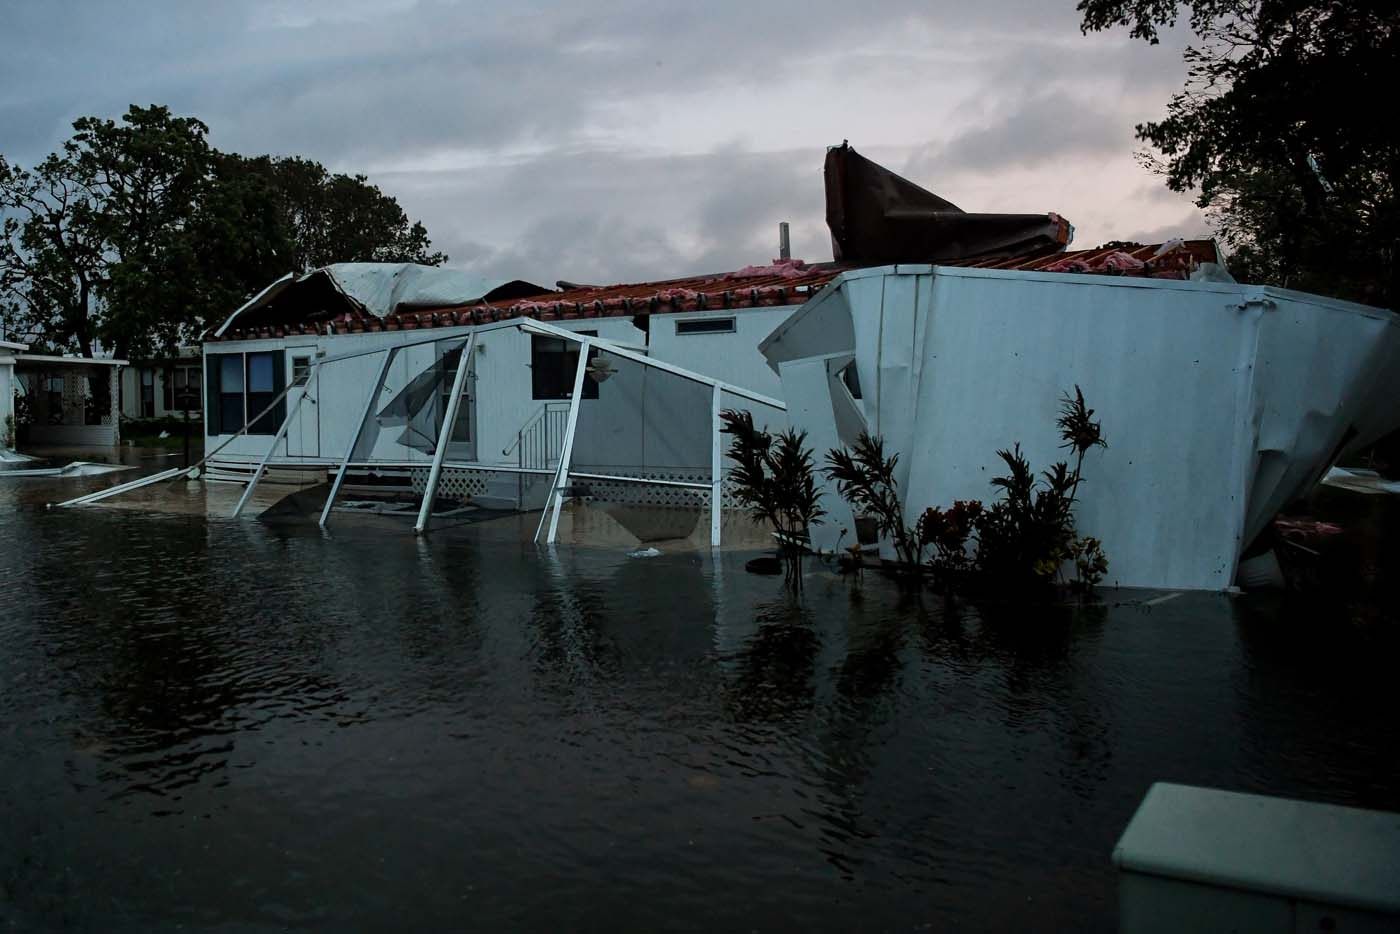 Flood water from Hurricane Irma surround a damaged mobile home in Bonita Springs, Florida, U.S., September 10, 2017. REUTERS/Bryan Woolston